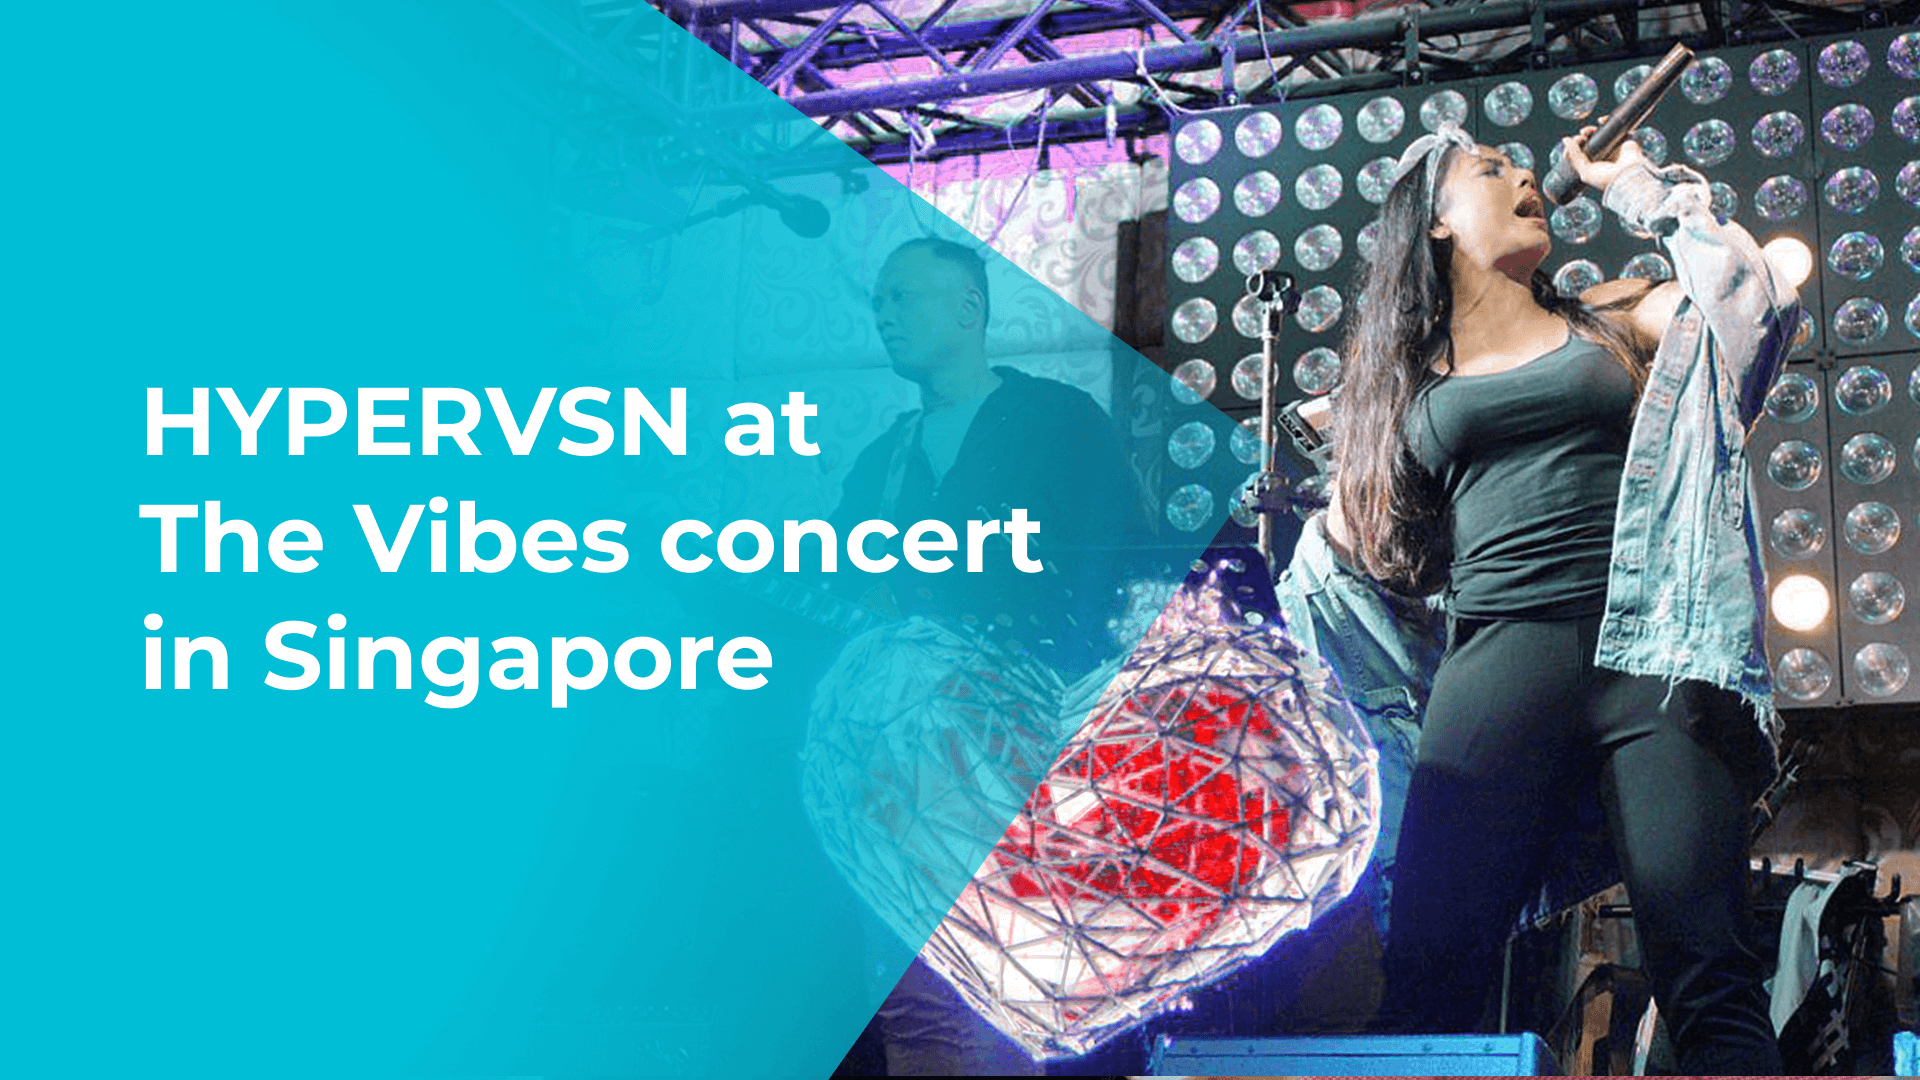 HYPERVSN at The Vibes concert in Singapore